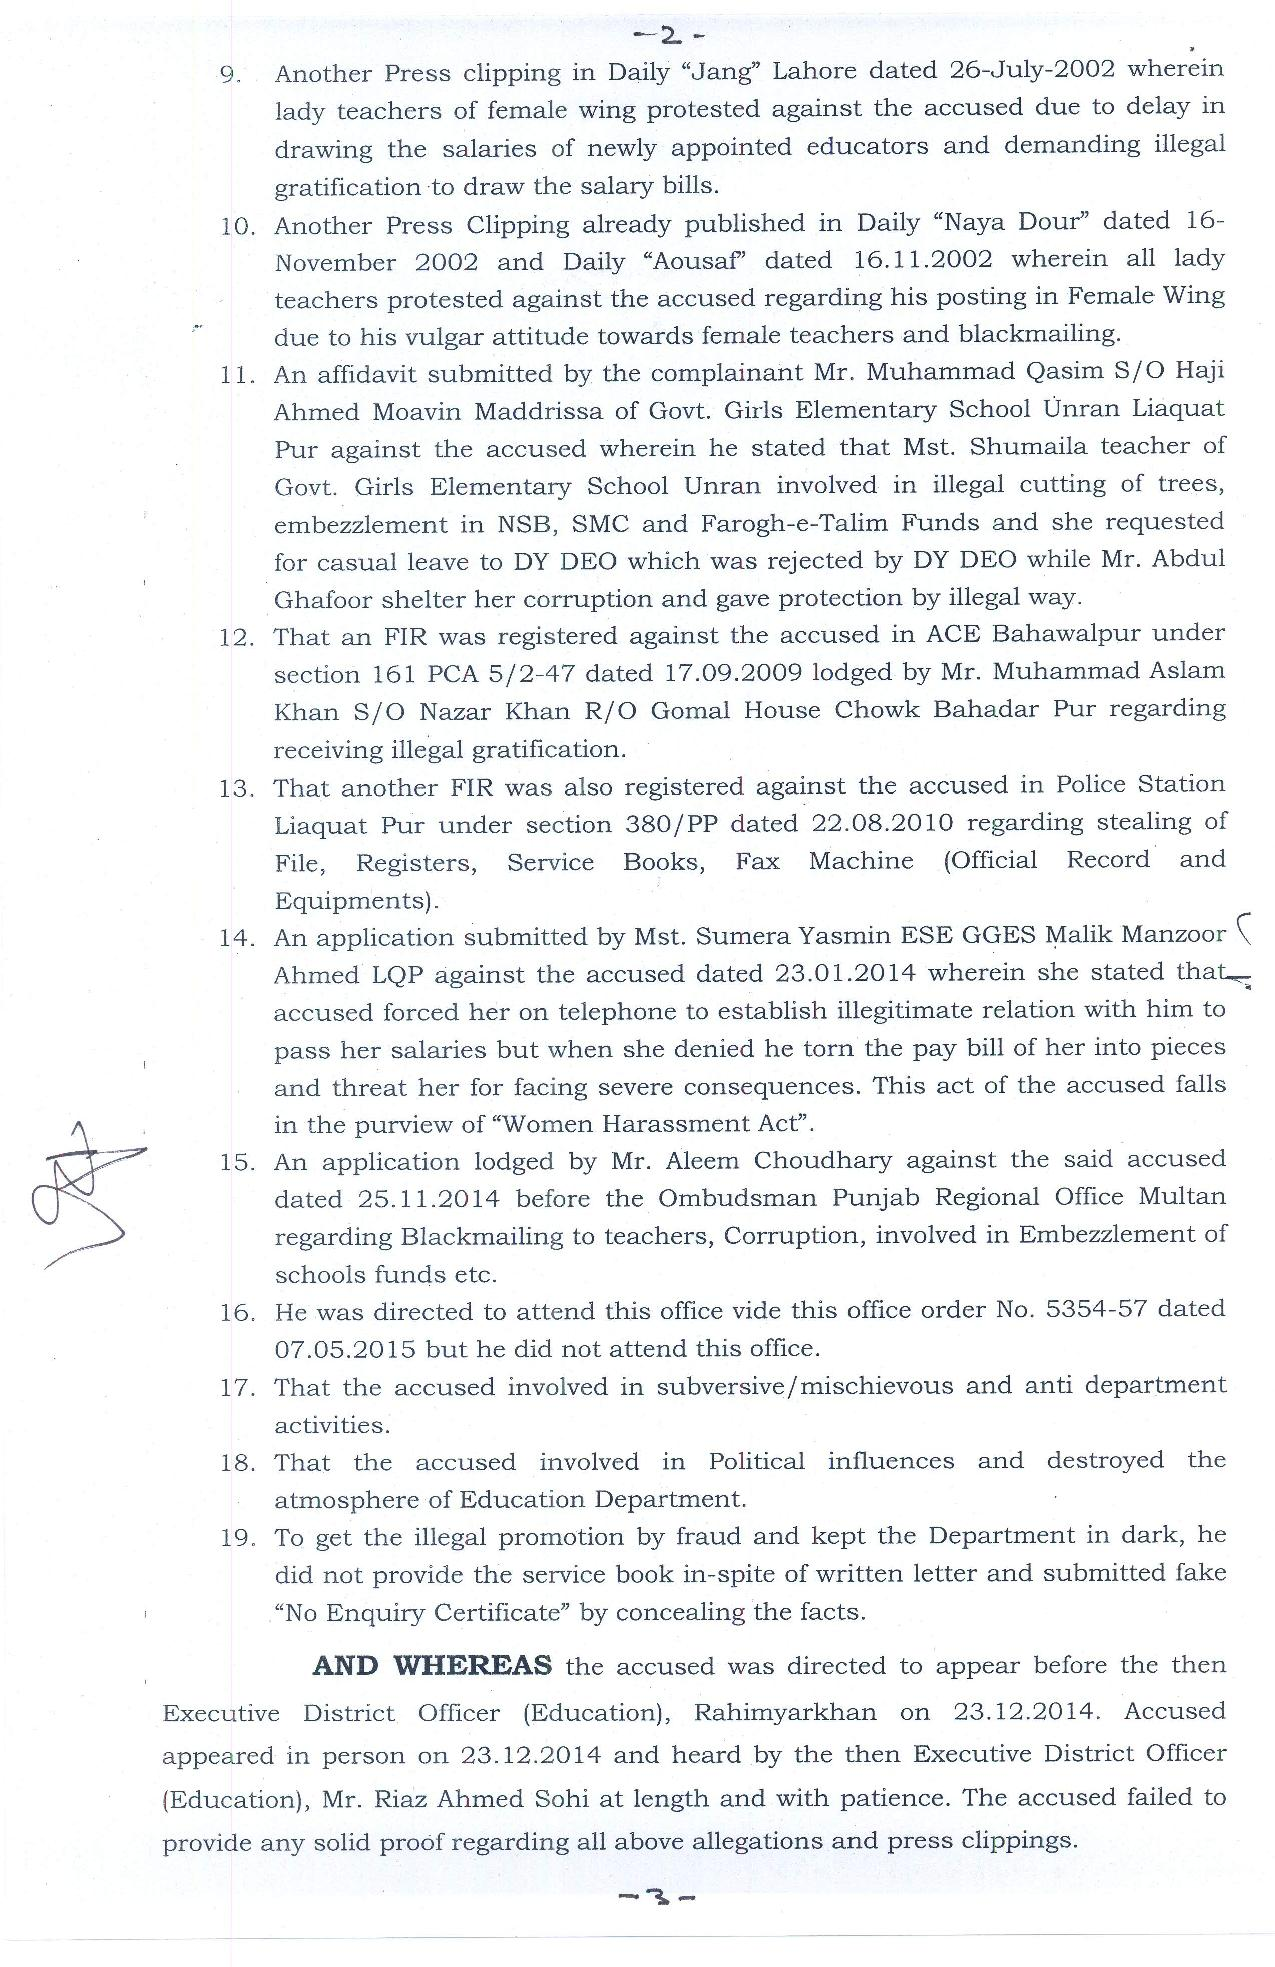 Removal from Service orders of Abdul Ghafoor Senior Clerk